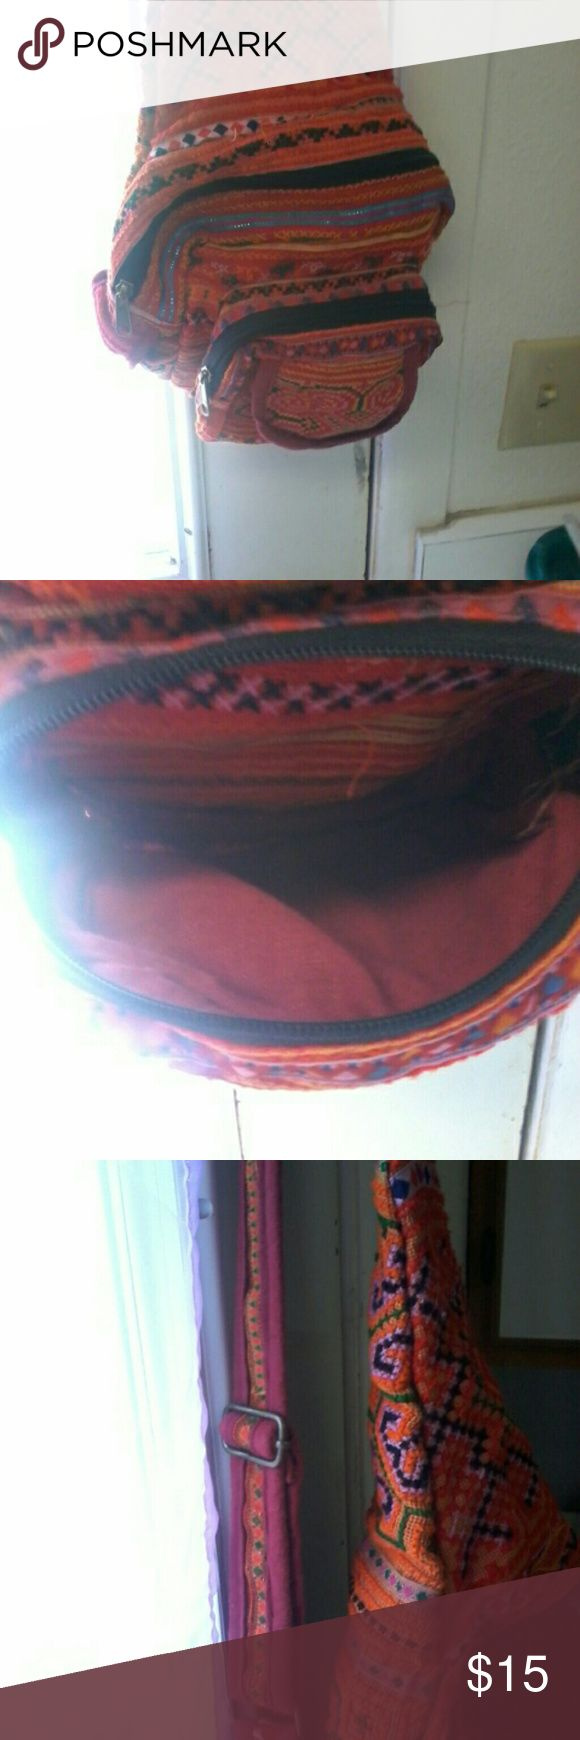 orange india motif crossbody purse orange crossbody vag,.,in excellent shape...picturs show..medium.. no holes, marks or tears,  hard to tell has been used.. Bags Crossbody Bags